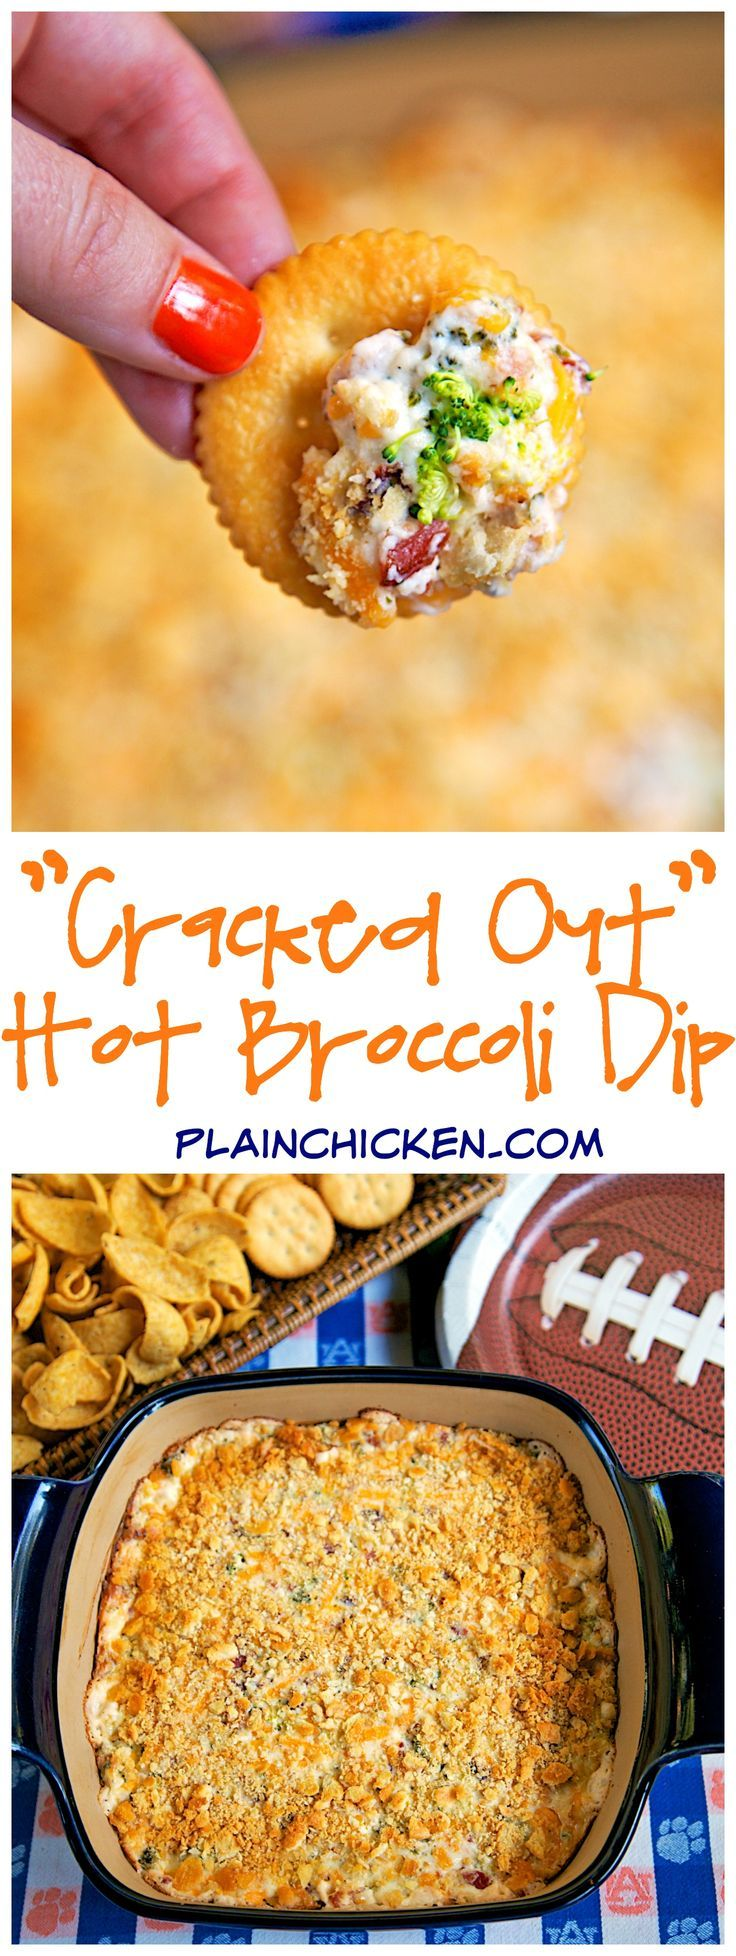 """Cracked Out"" Hot Broccoli Dip - baked broccoli dip loaded with cheddar, bacon and ranch. SO addicting. Took this to a party and it was gone in a flash. Everyone asked for the recipe!"